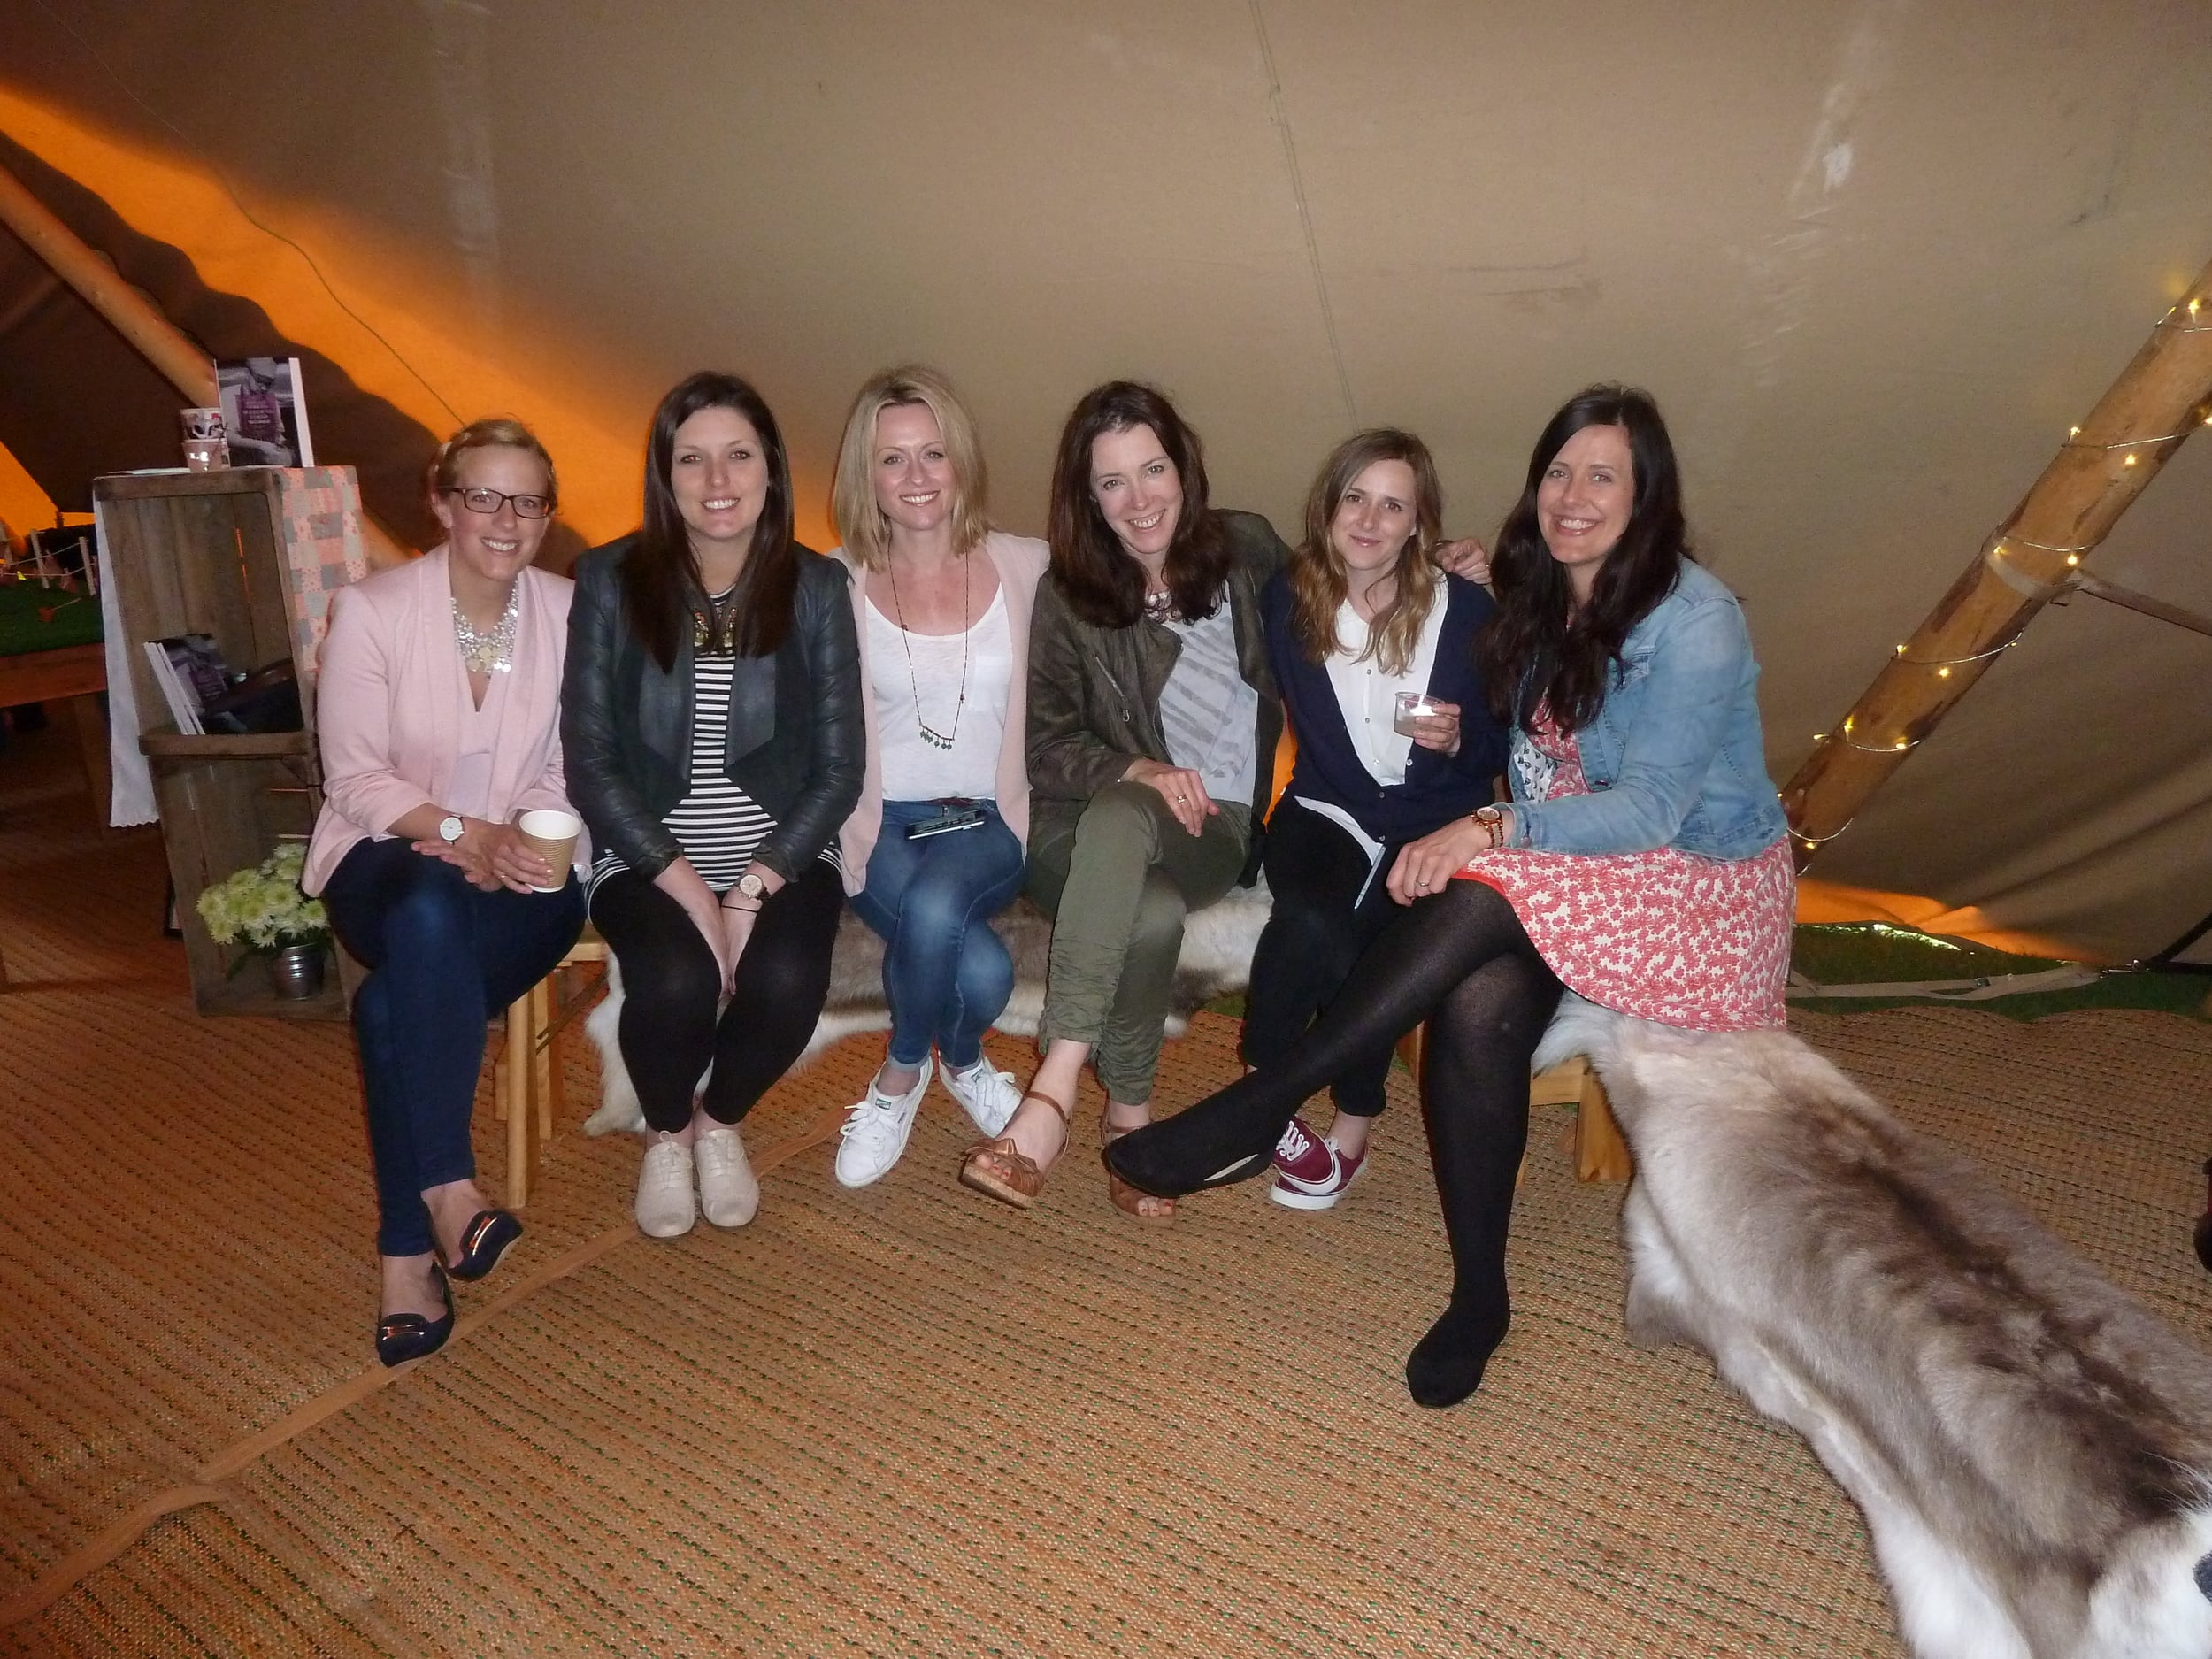 This picture was taken at the end of the day with some lovely suppliers -Allie, Lisa, Karen, Lara and Kerry